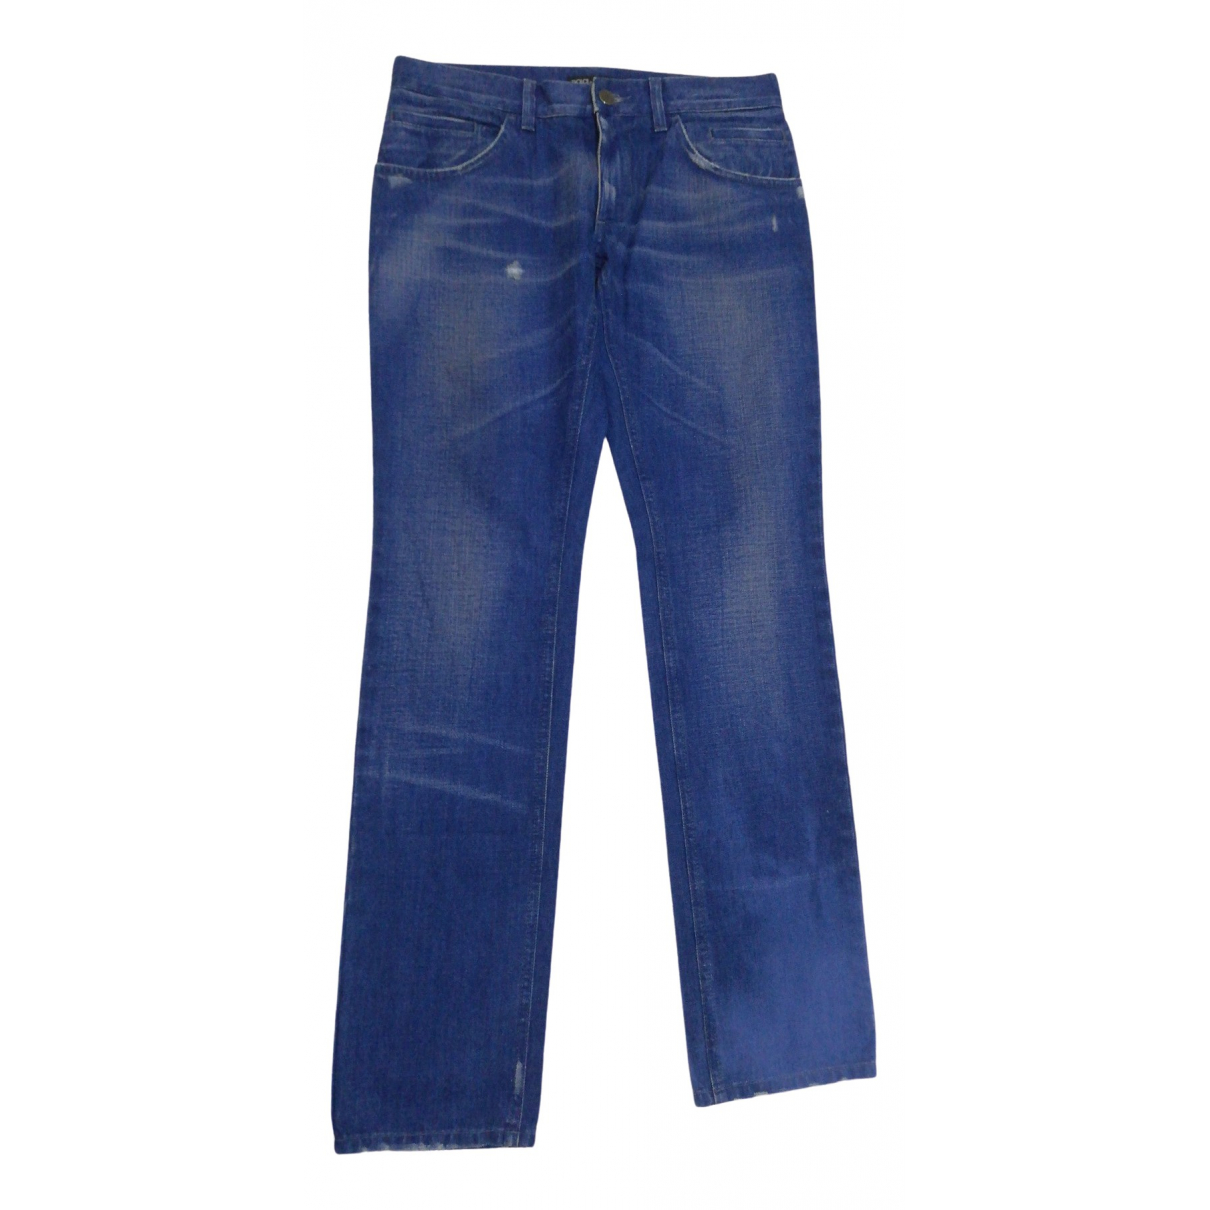 Dolce & Gabbana \N Blue Cotton - elasthane Jeans for Men 30 US